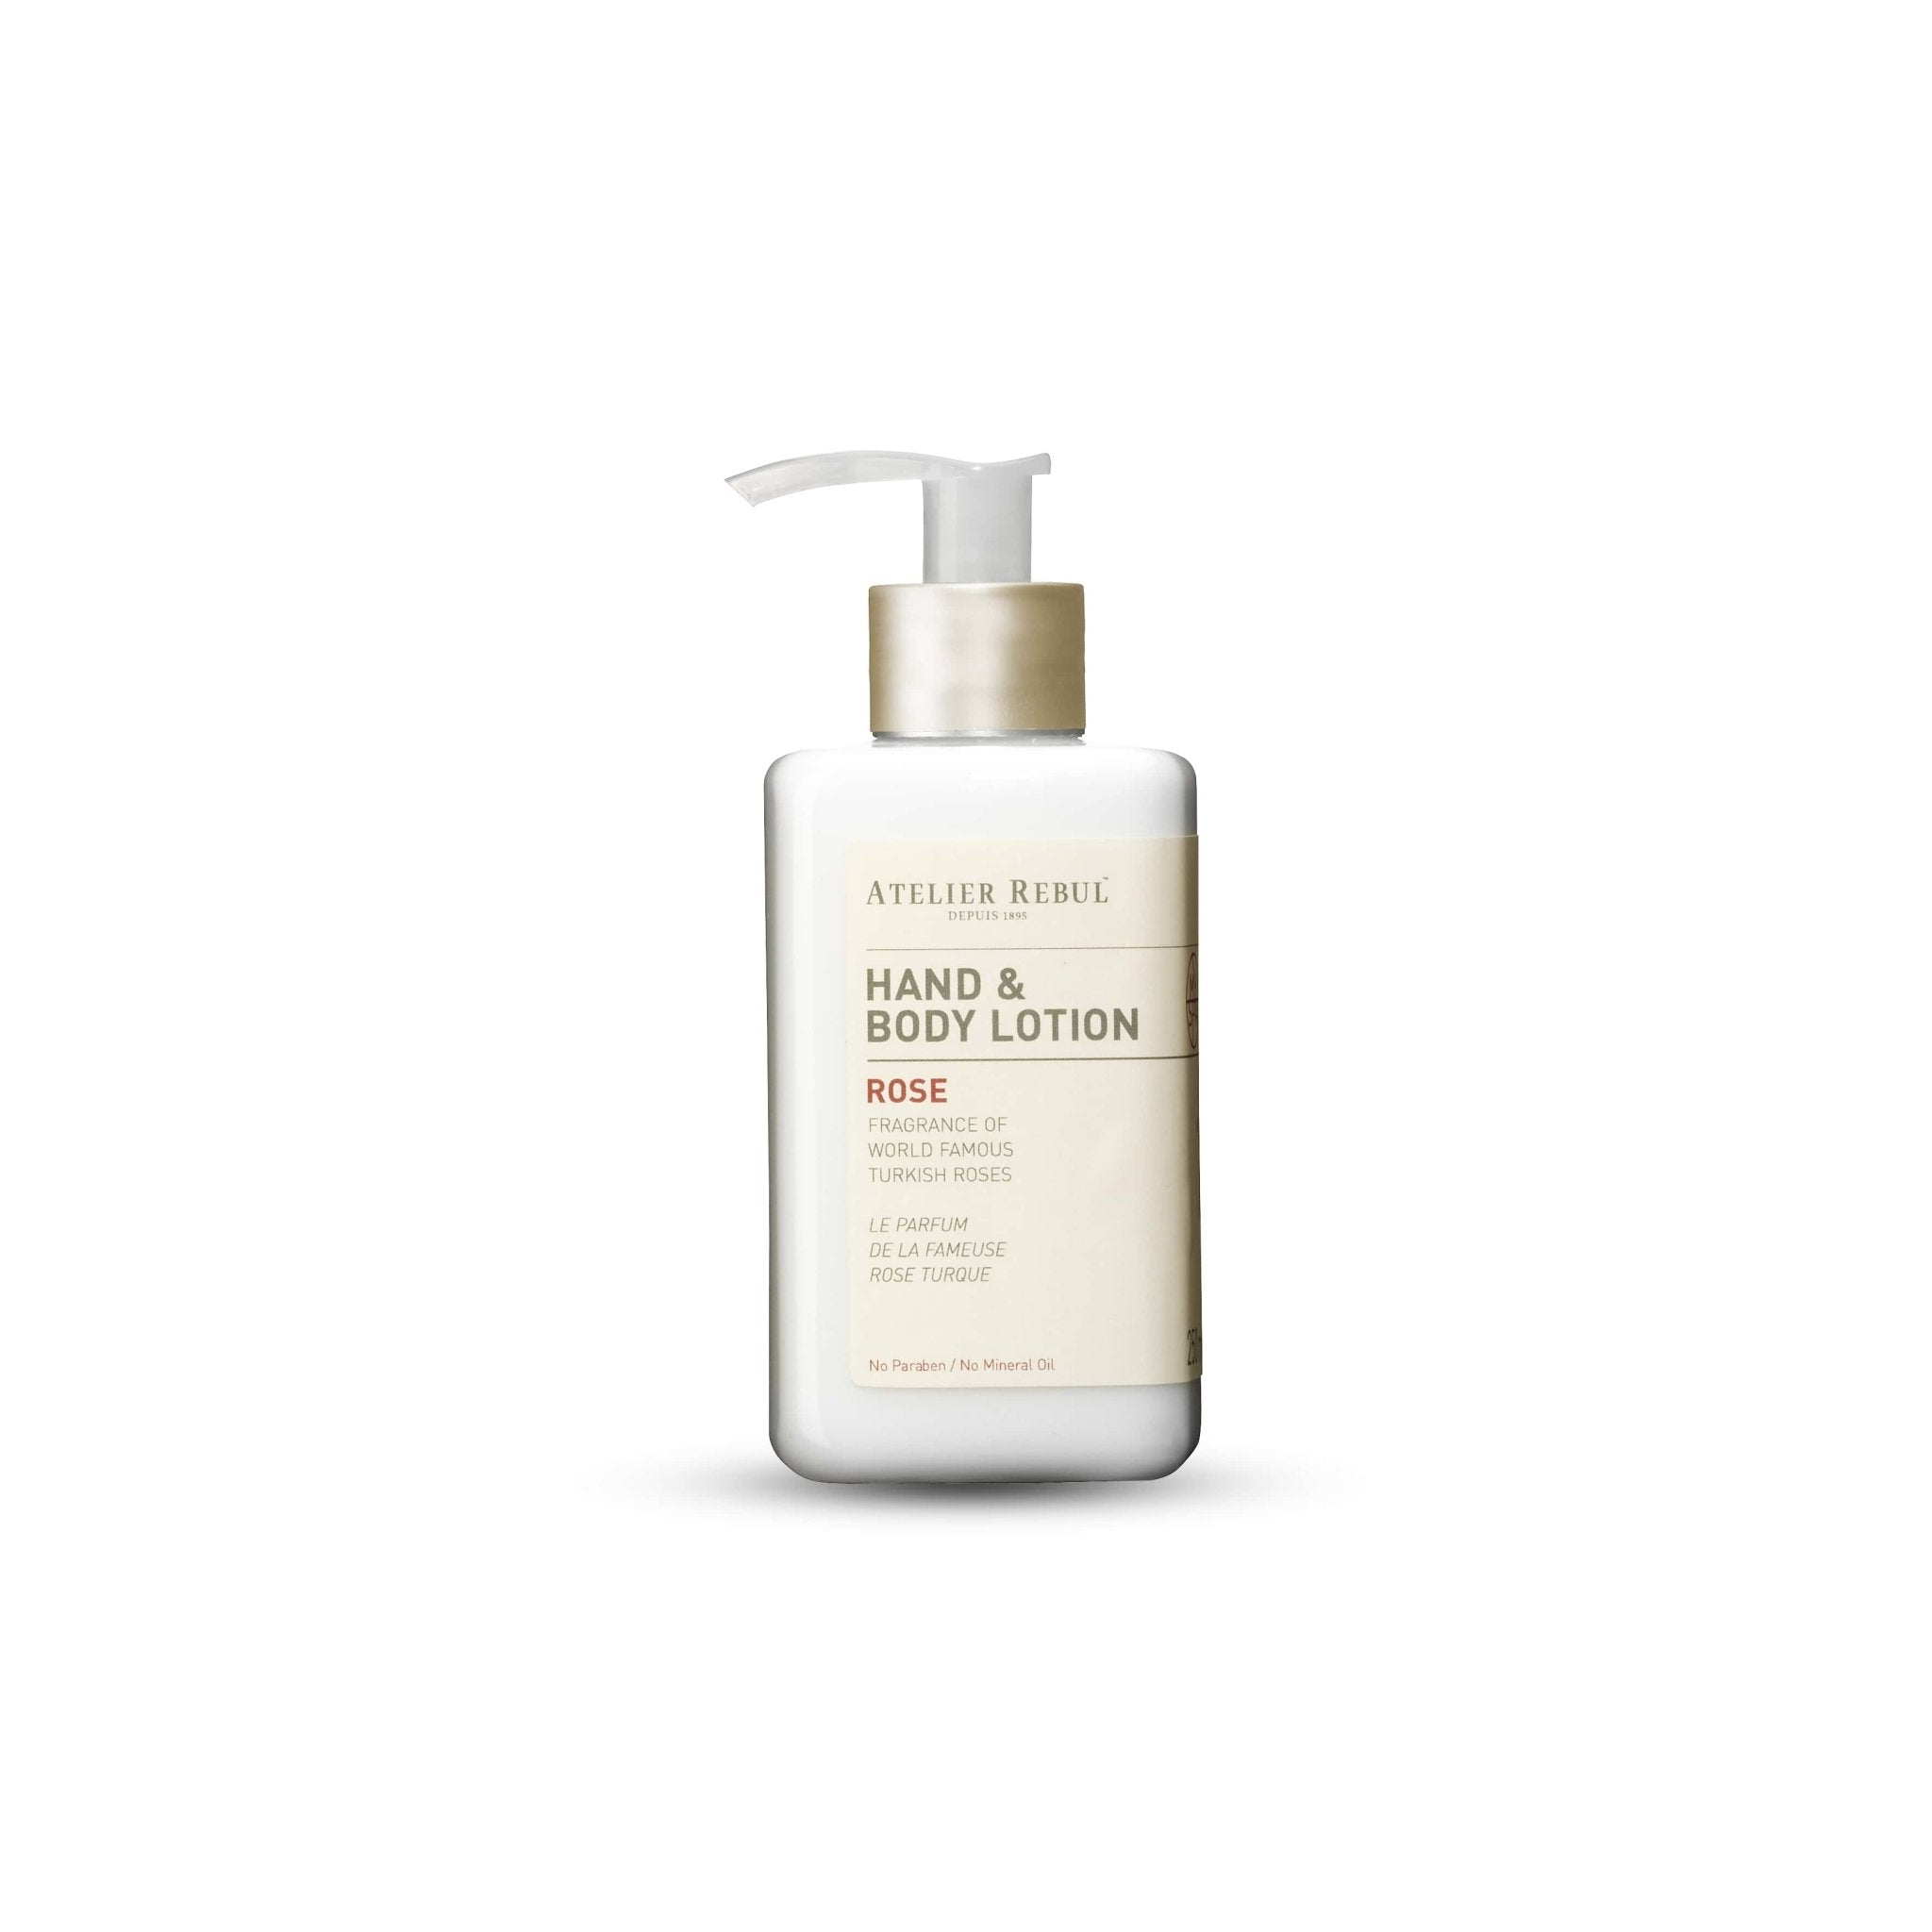 ATELIER REBUL -HAND & BODY LOTION / ROSE - 250ML